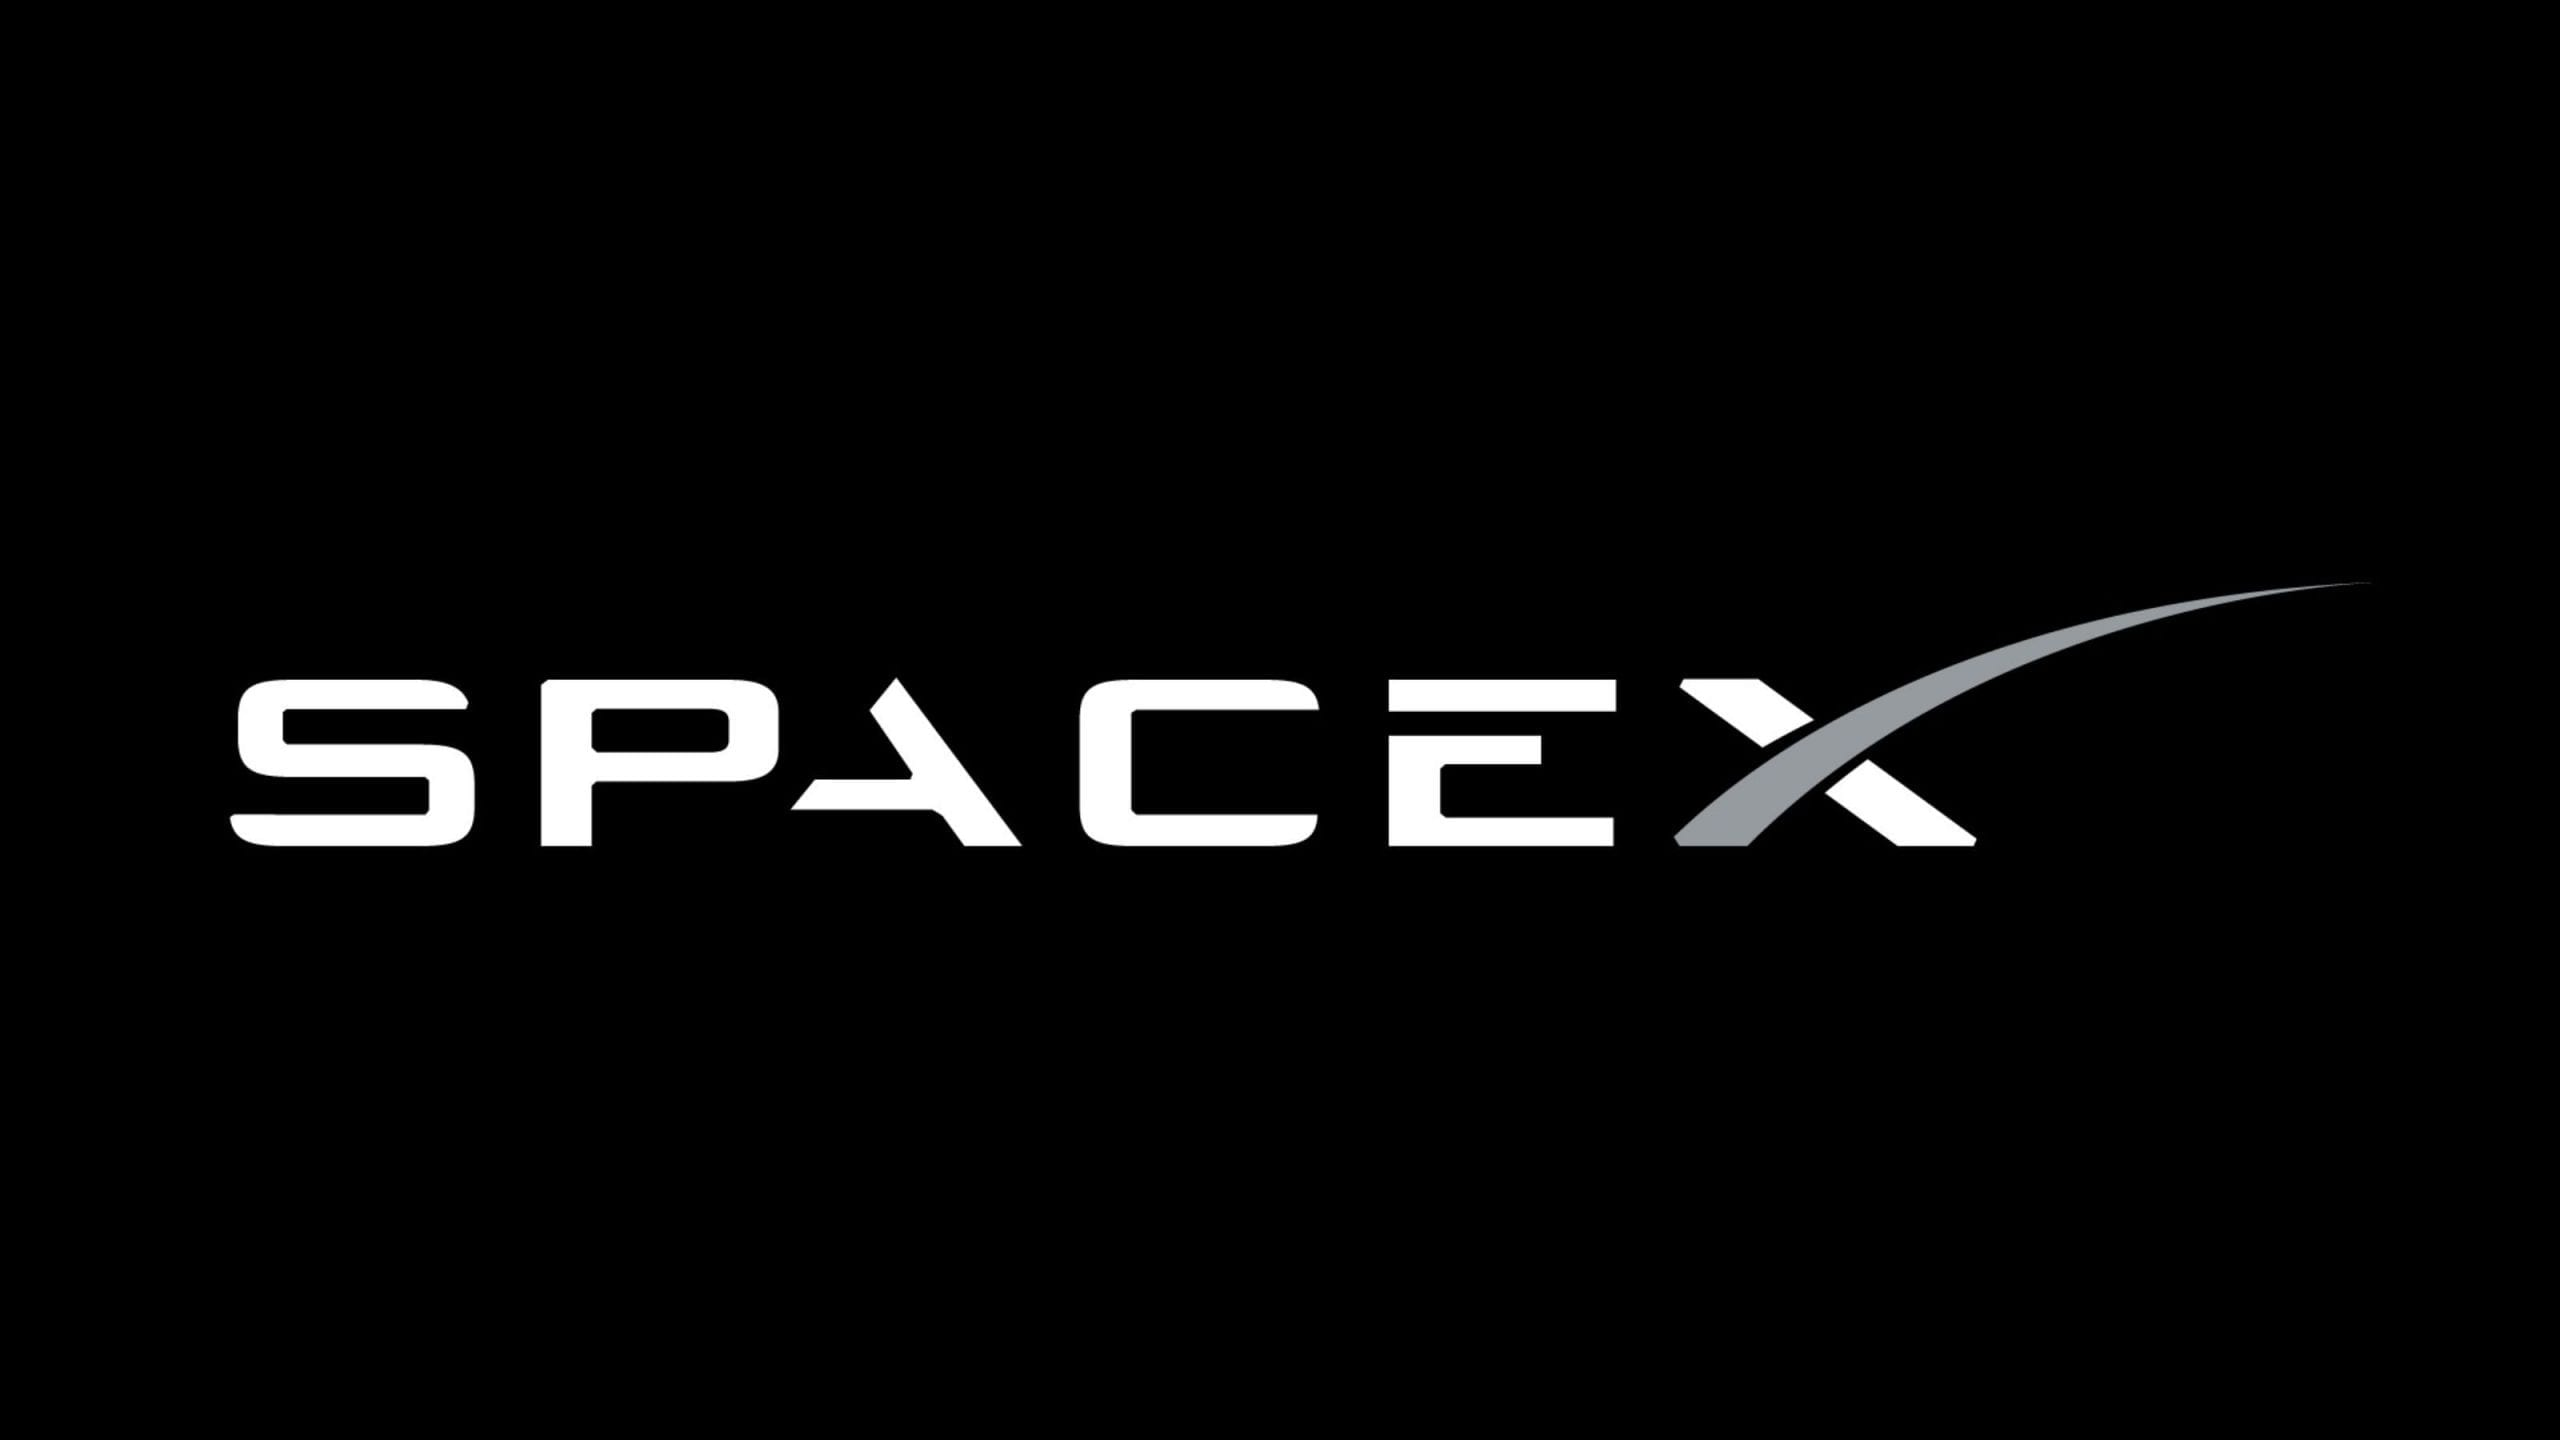 SpaceX awarded contract to help develop USA missile-tracking satellite network